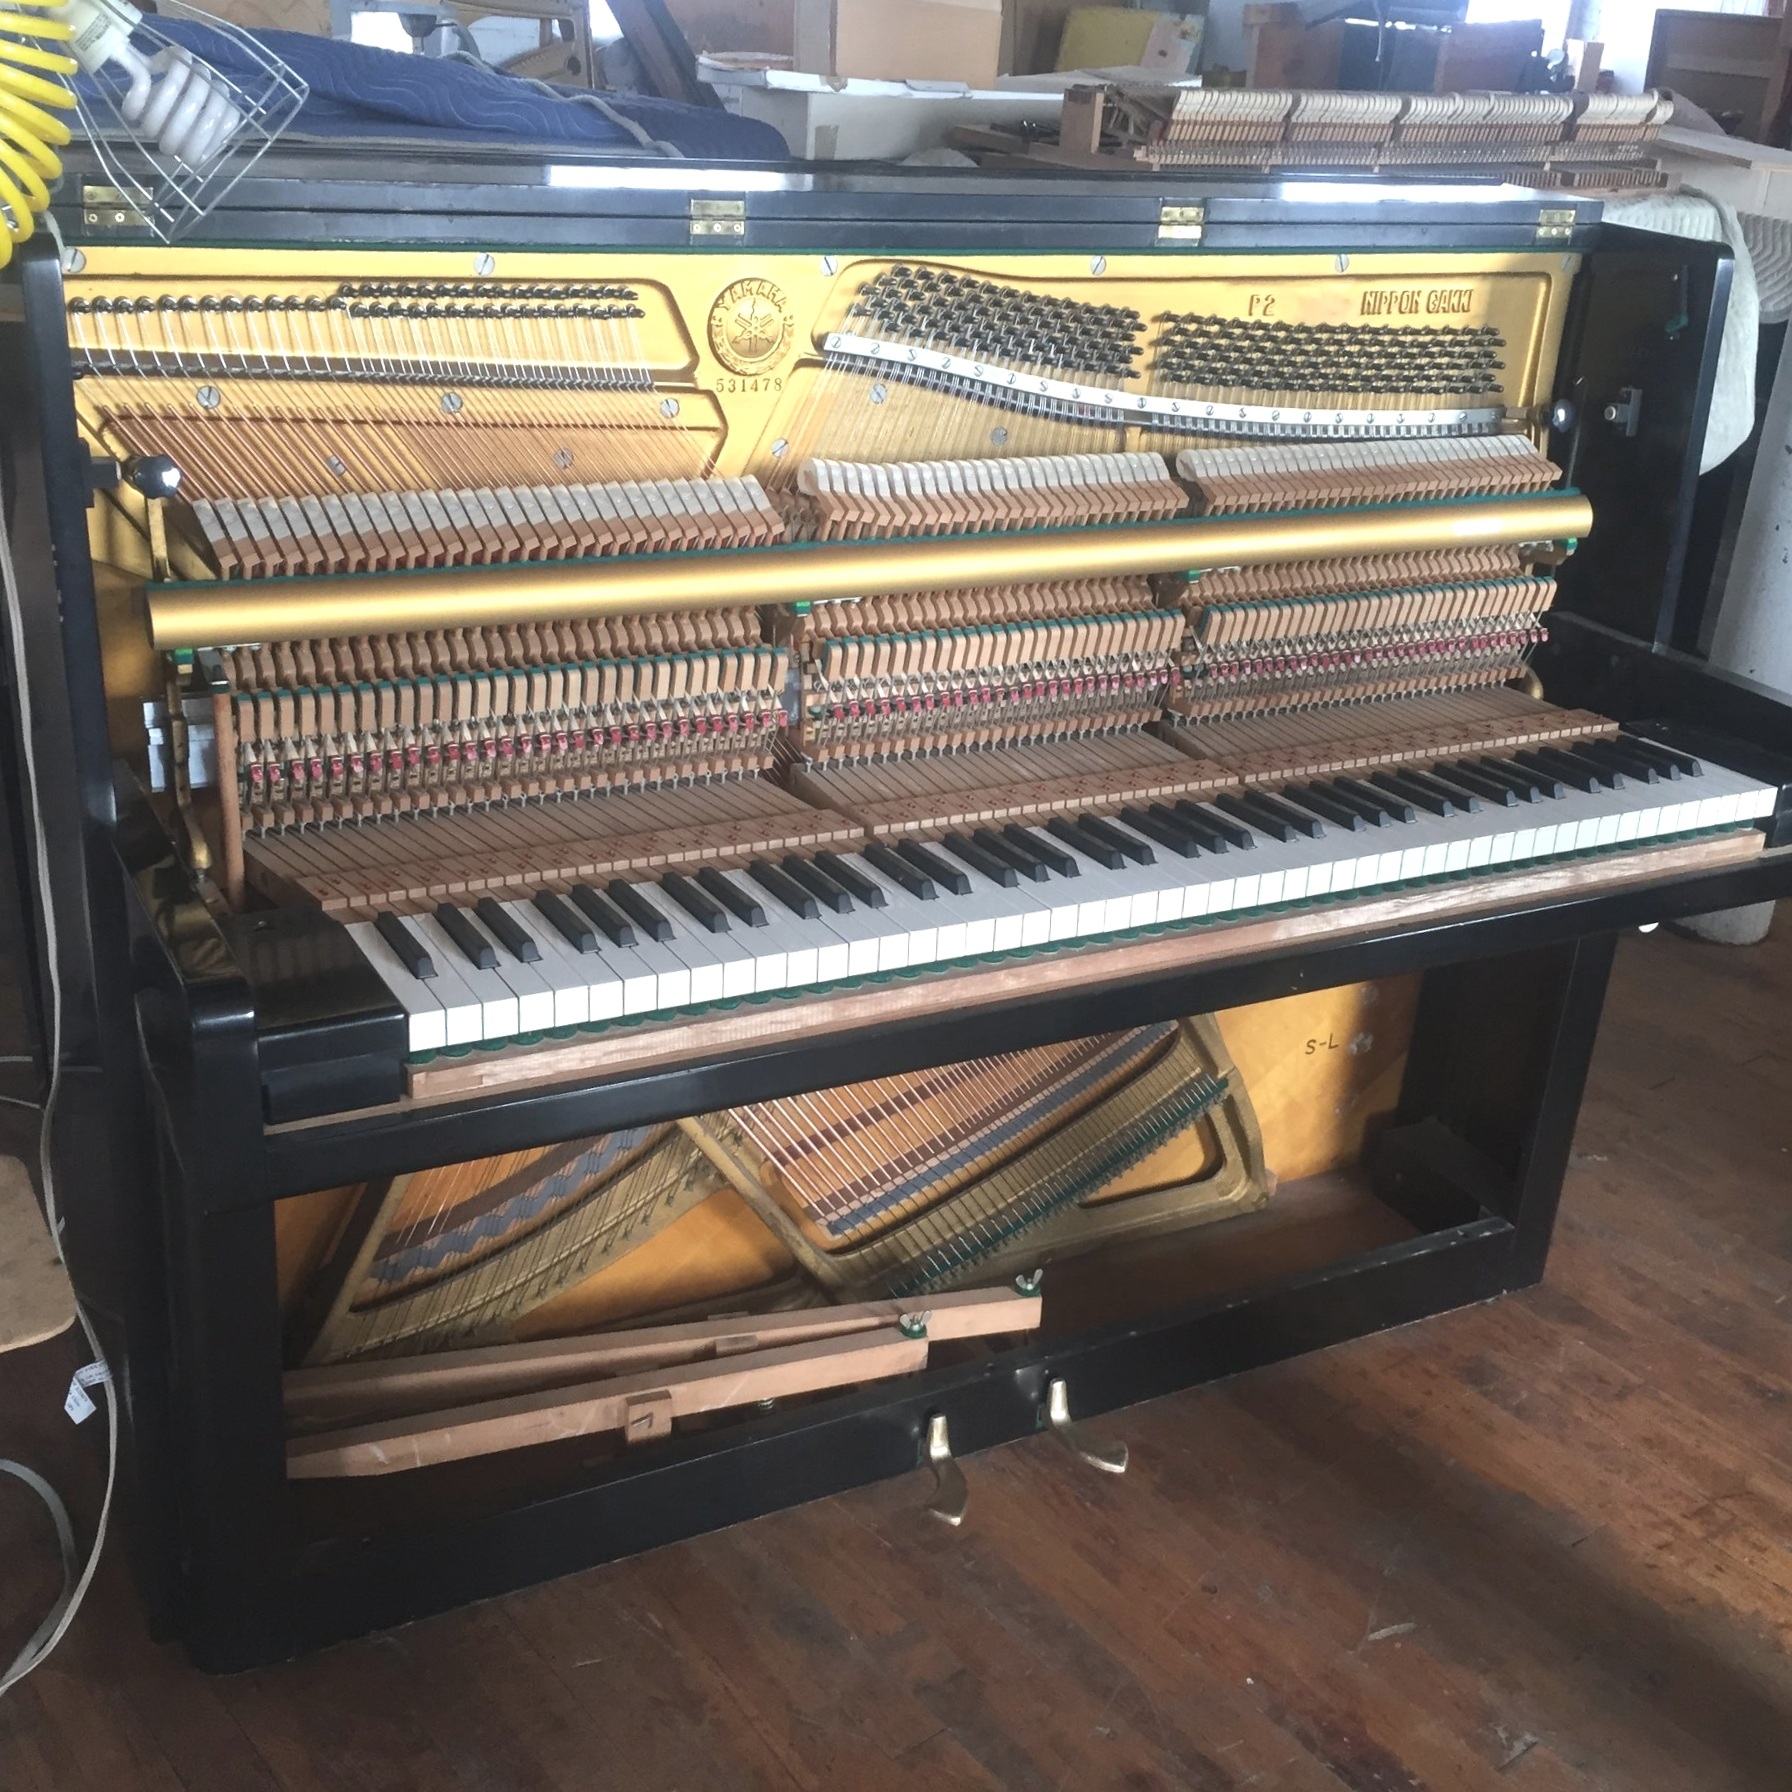 Moving/Tuning/Repair - We provide piano moving/tuning/repairing services. Contact us for details about the services.